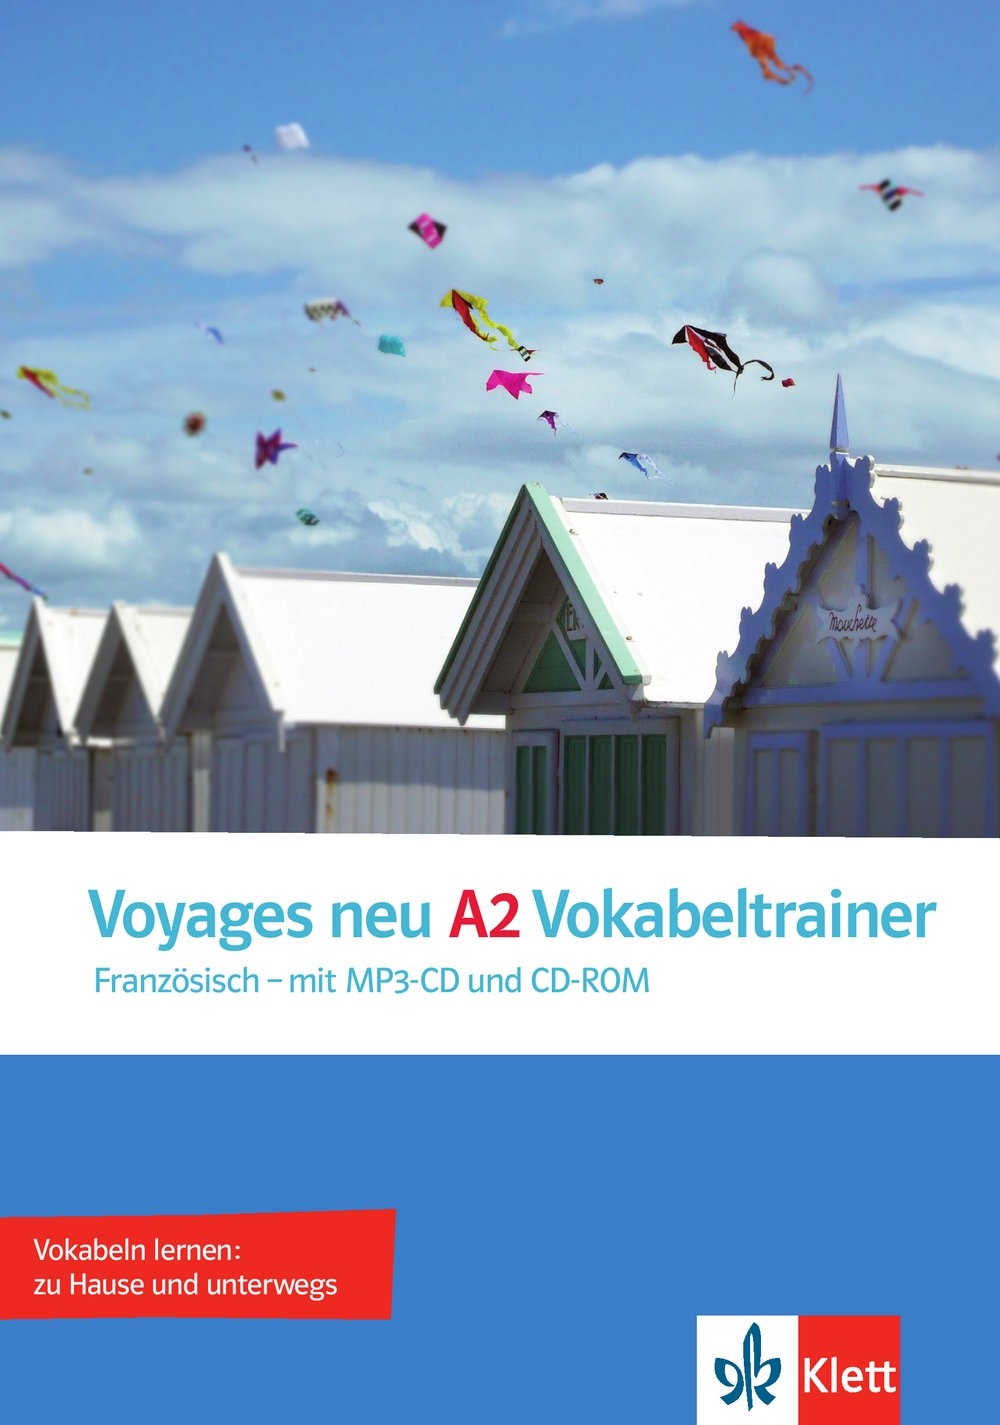 Voyages neu A2 Vokabeltrainer: Vokabelheft + CD/MP3 + CD-ROM (PC/Mac)